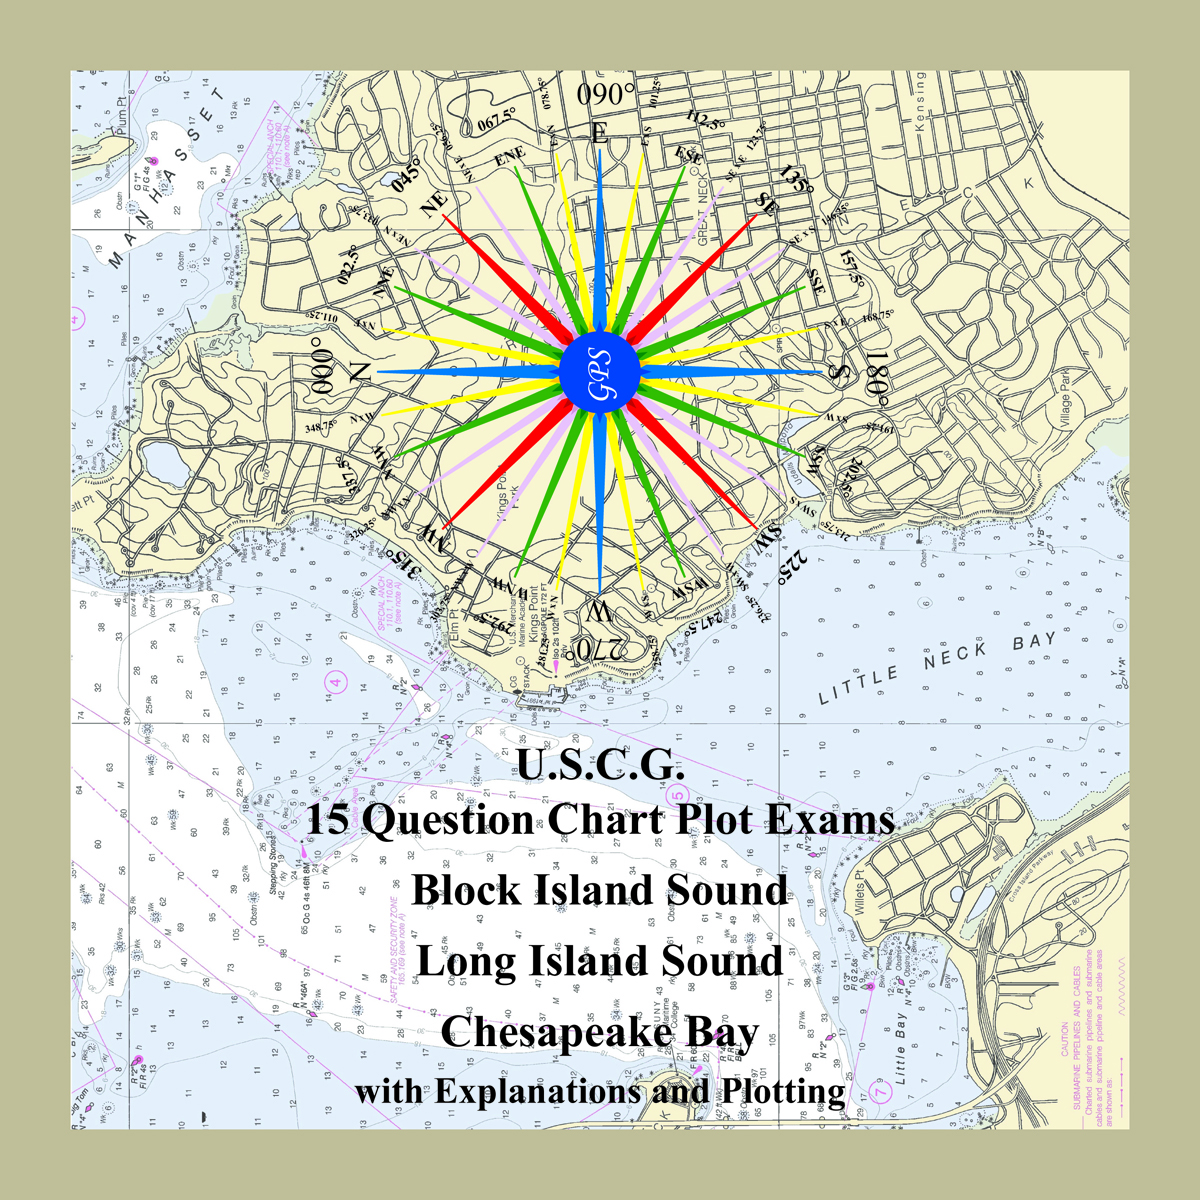 Square U.S.C.G. 15 Question Chart Plot Exams Cover